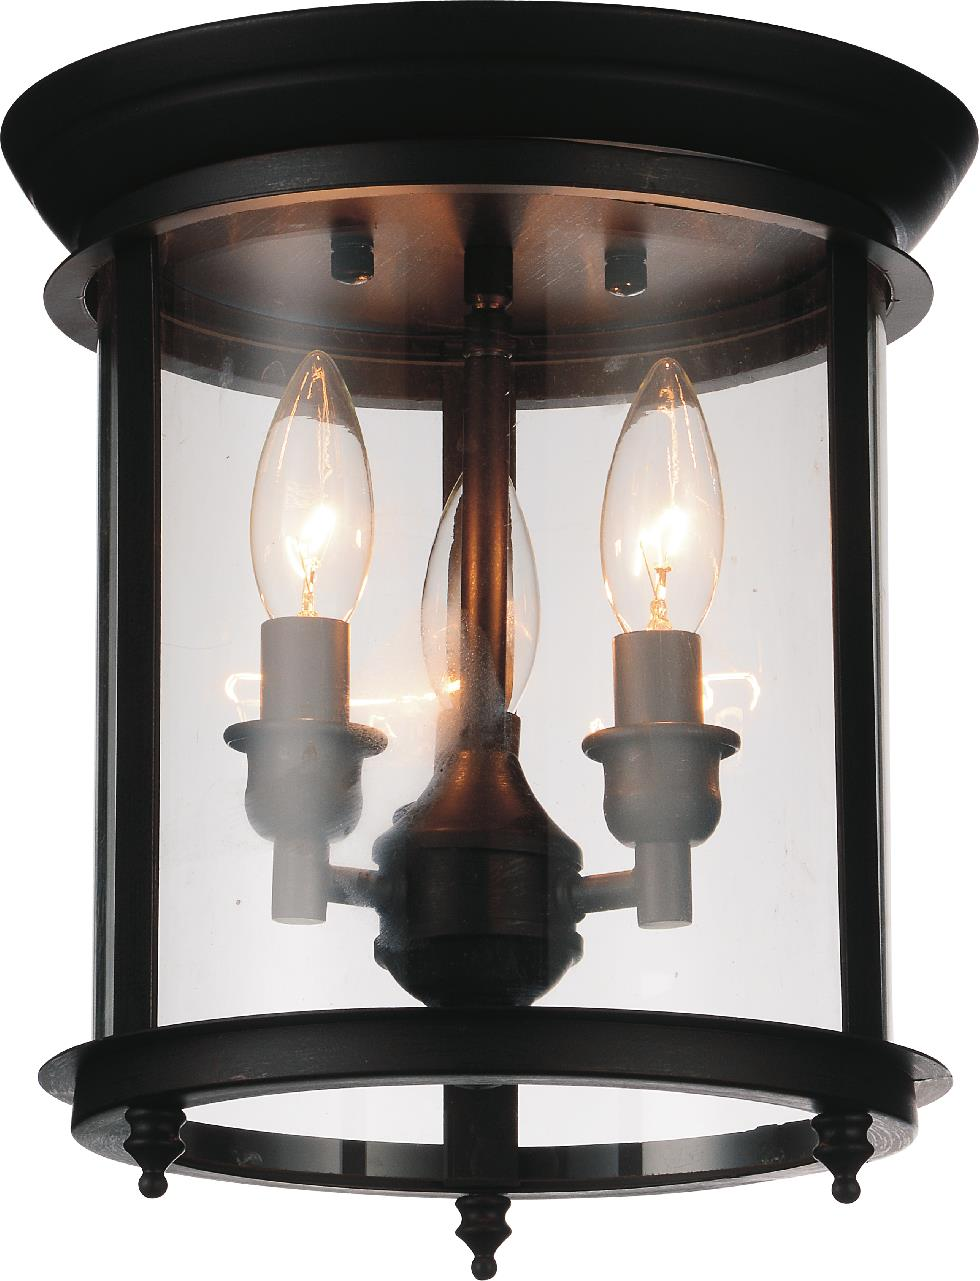 3 Light Cage Flush Mount with Oil Rubbed Bronze finish